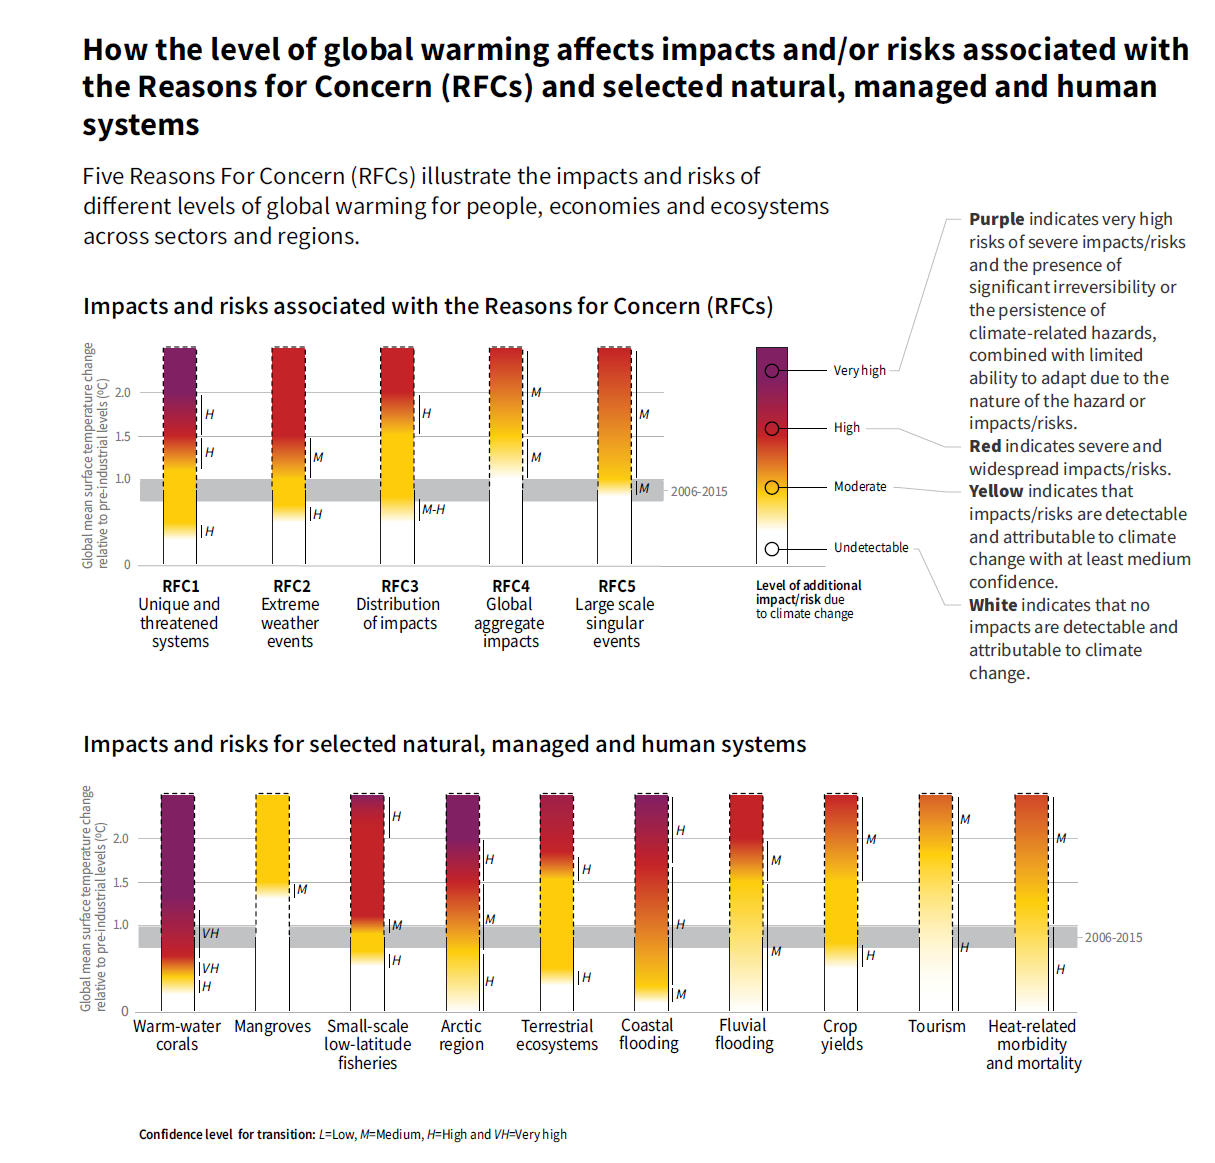 IPCC report: How the level of global warming affects impacts and/or risks associated with the Reasons for Concern (RFCs) and selected natural, managed and human systems